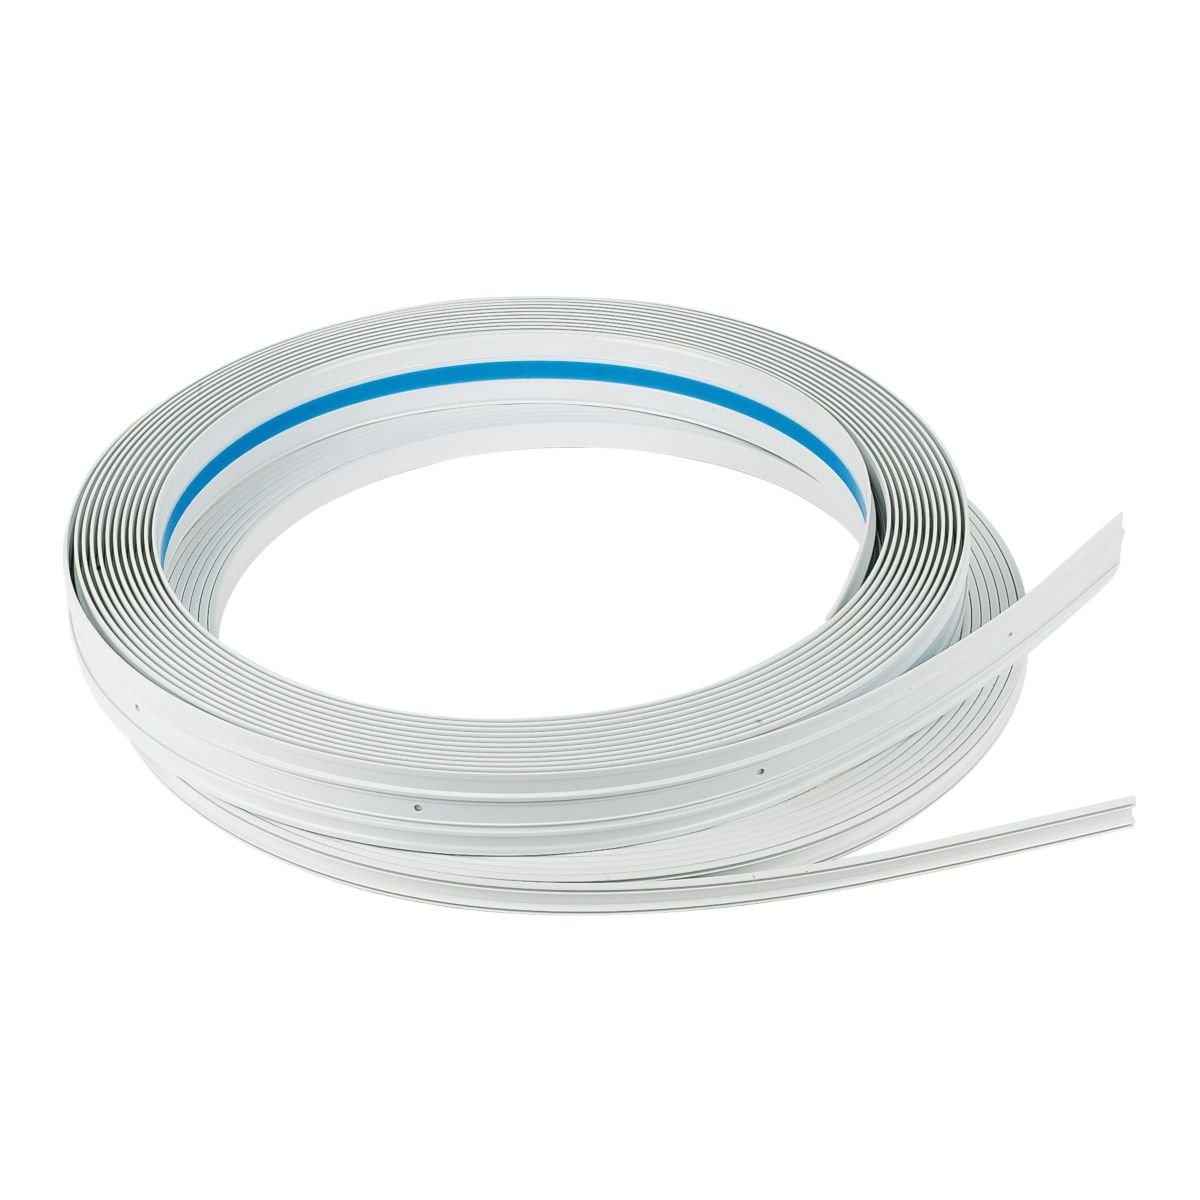 Mita Coiled Trunking 38mm x 16mm x 12m Generic